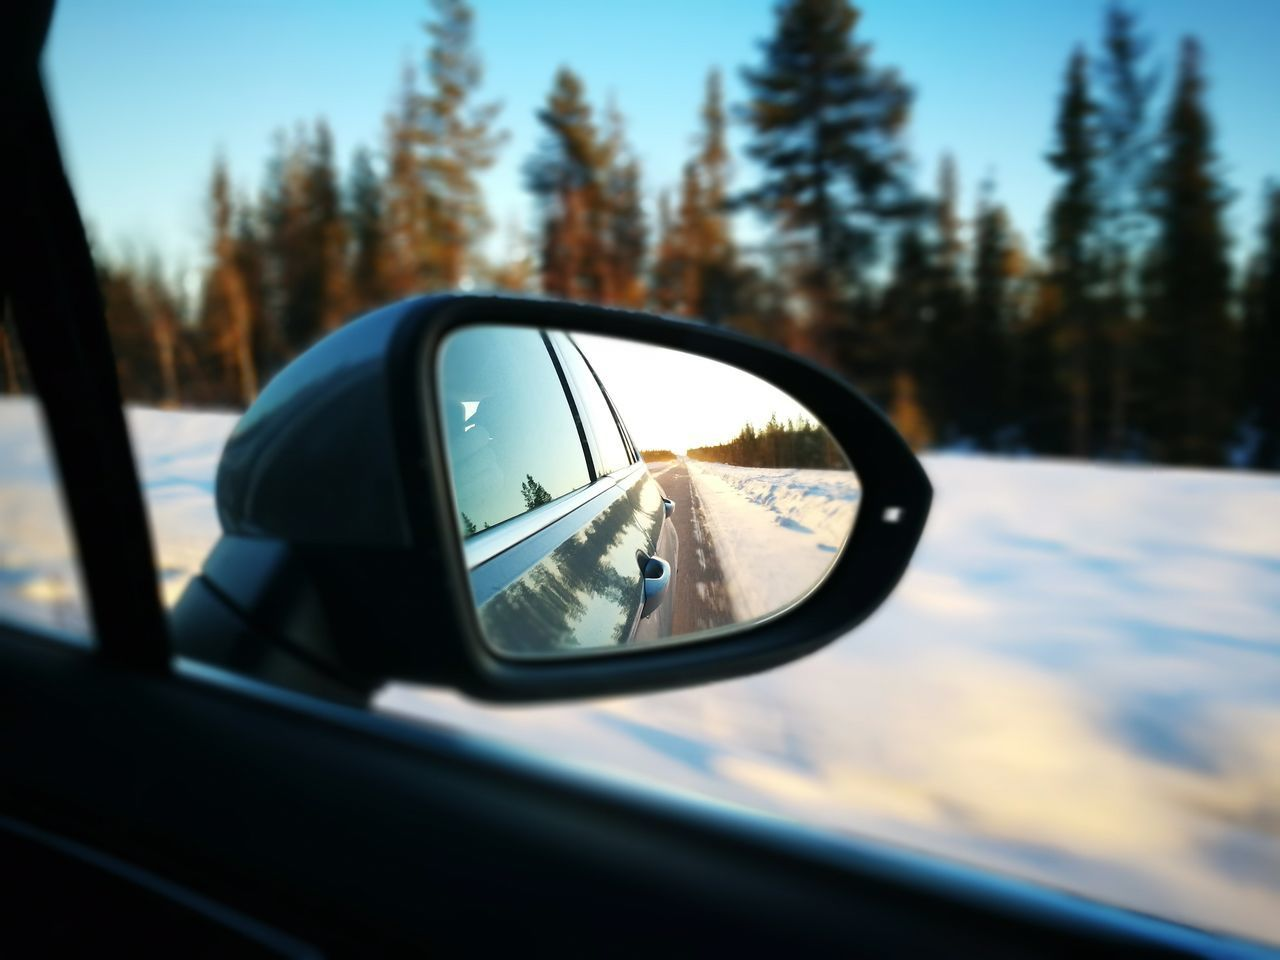 An eye backwards ( Reflection Car Travel Close-up Land Vehicle Side-view Mirror Vehicle Mirror Snow Moving )